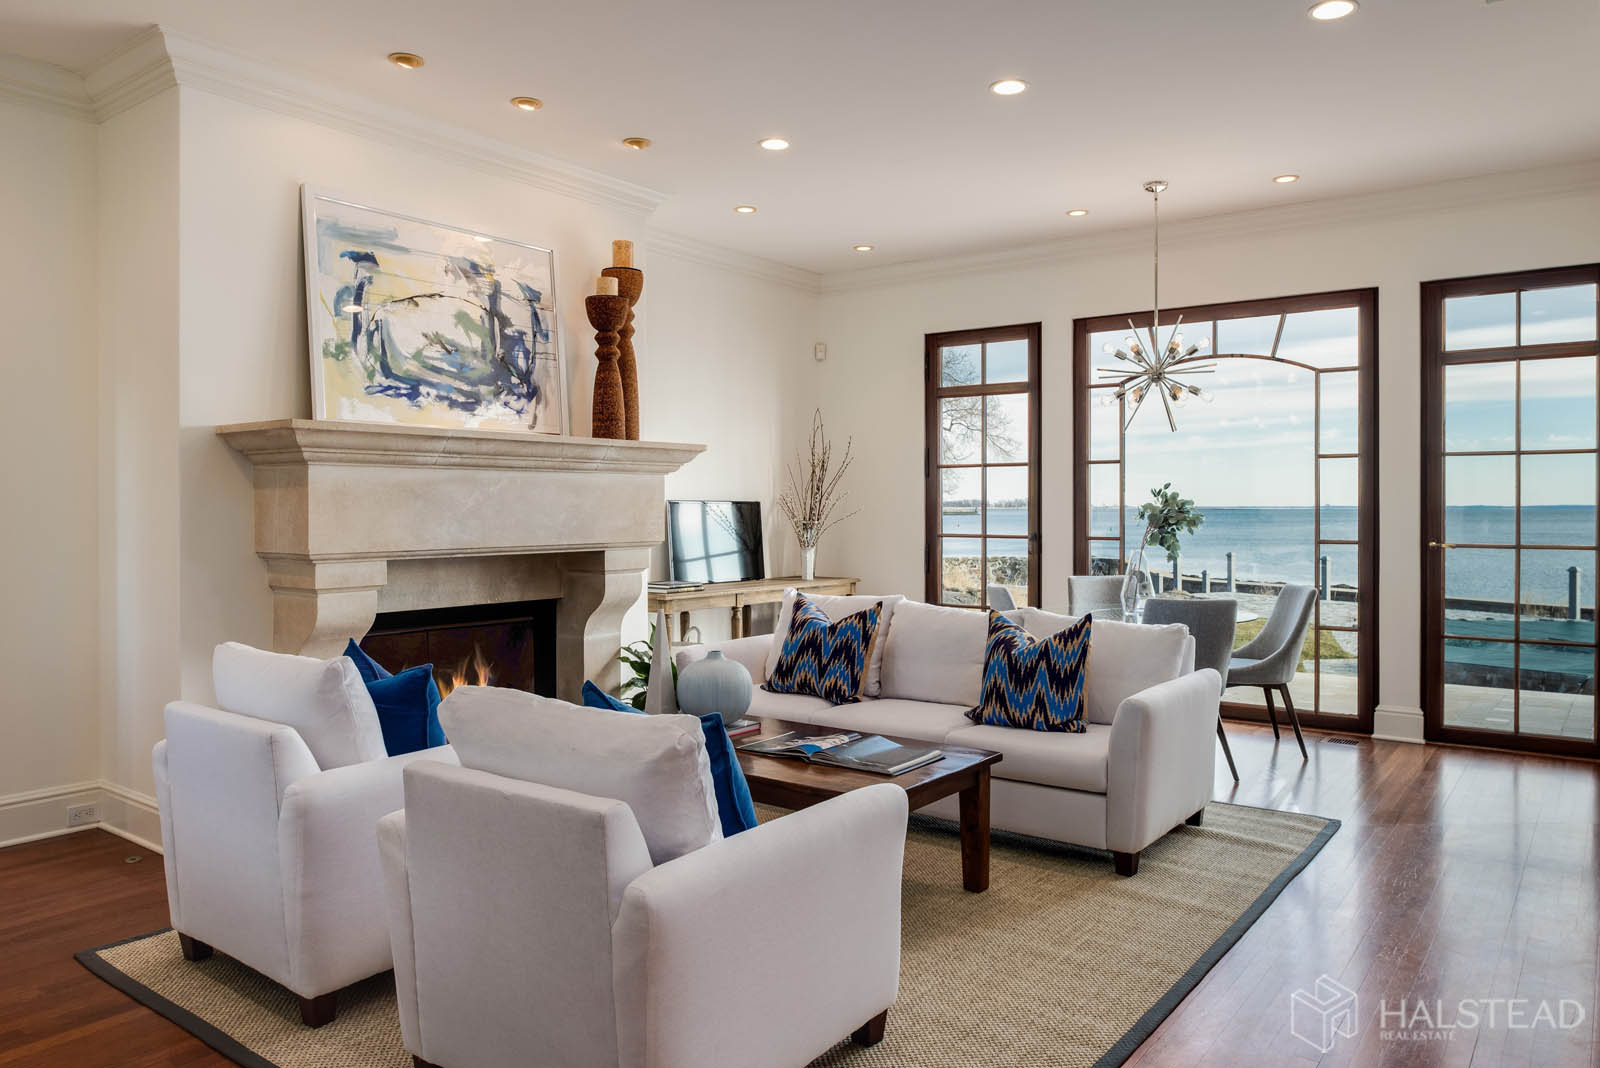 25 Butlers Island Road, Darien, Connecticut, 06820, $10,900,000, Property For Sale, Halstead Real Estate, Photo 9